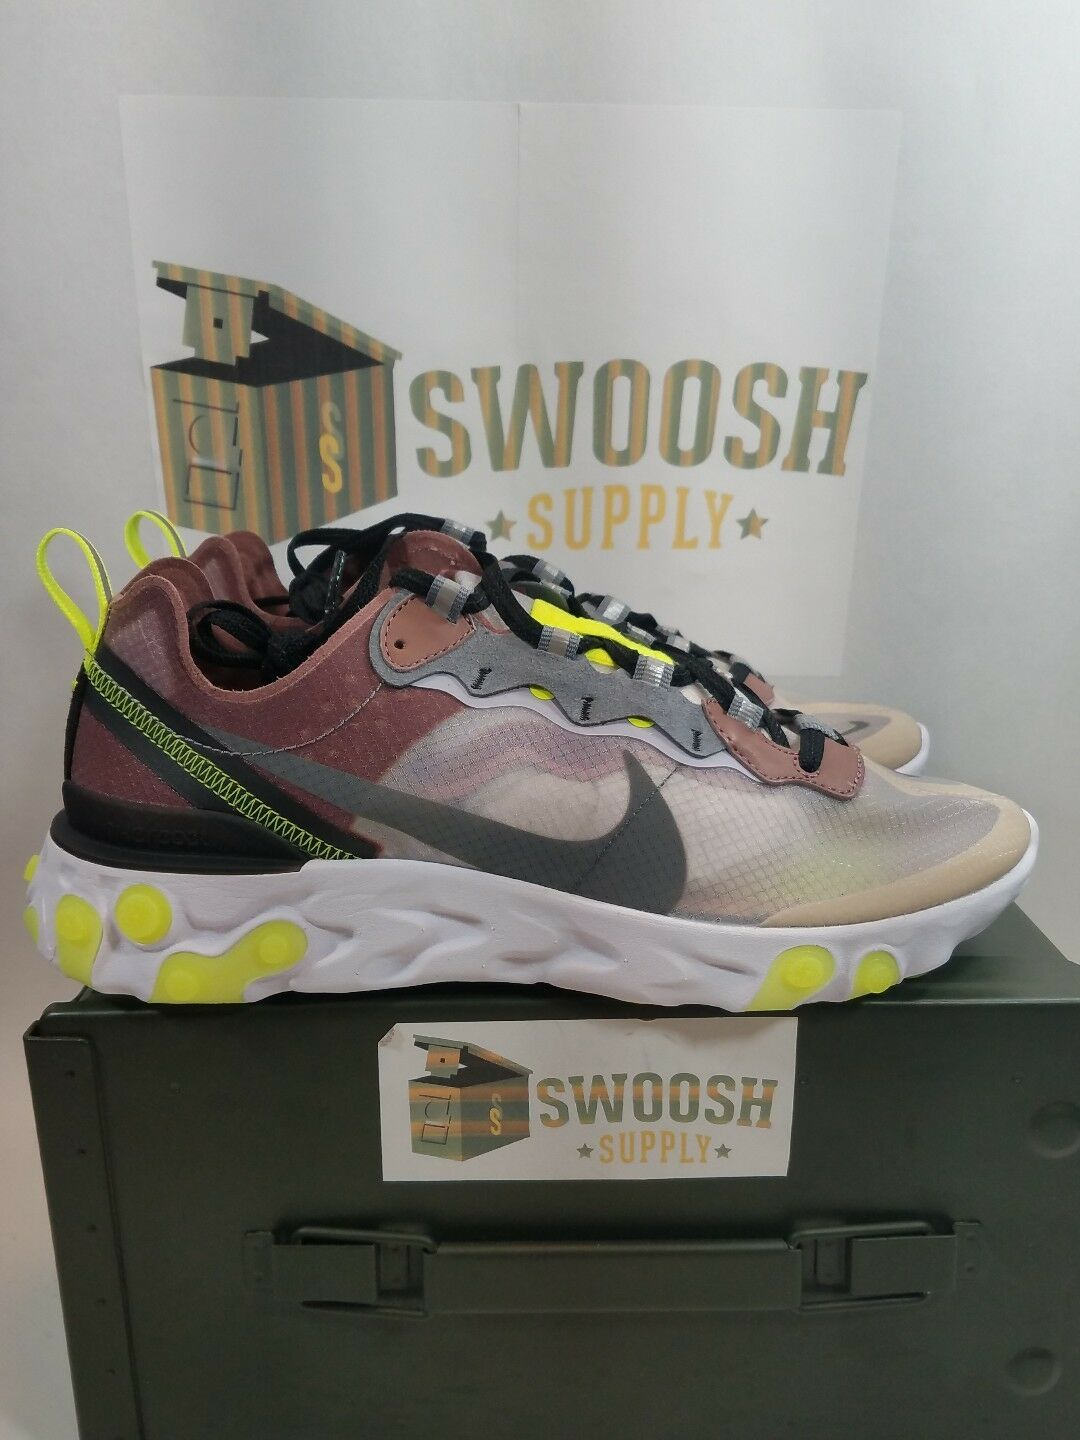 Nike React Element 87 Desert Sand Volt QS Size 8 Limited Edition AQ1090 002 DS